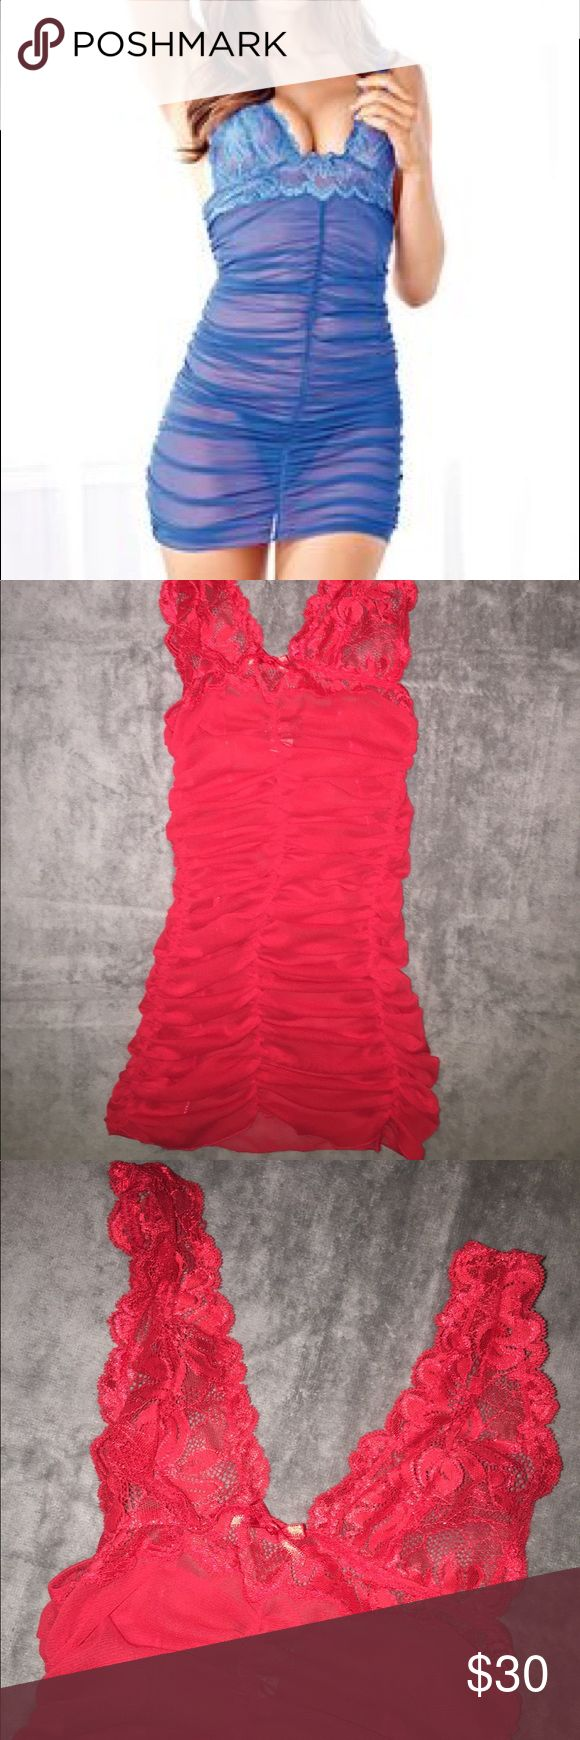 NWT *RED* LINGERIE by Frederick's of Hollywood NWOT Red LINGERIE, stretchy material. SIZE XS, by Frederick's of Hollywood. Frederick's of Hollywood Intimates & Sleepwear Chemises & Slips